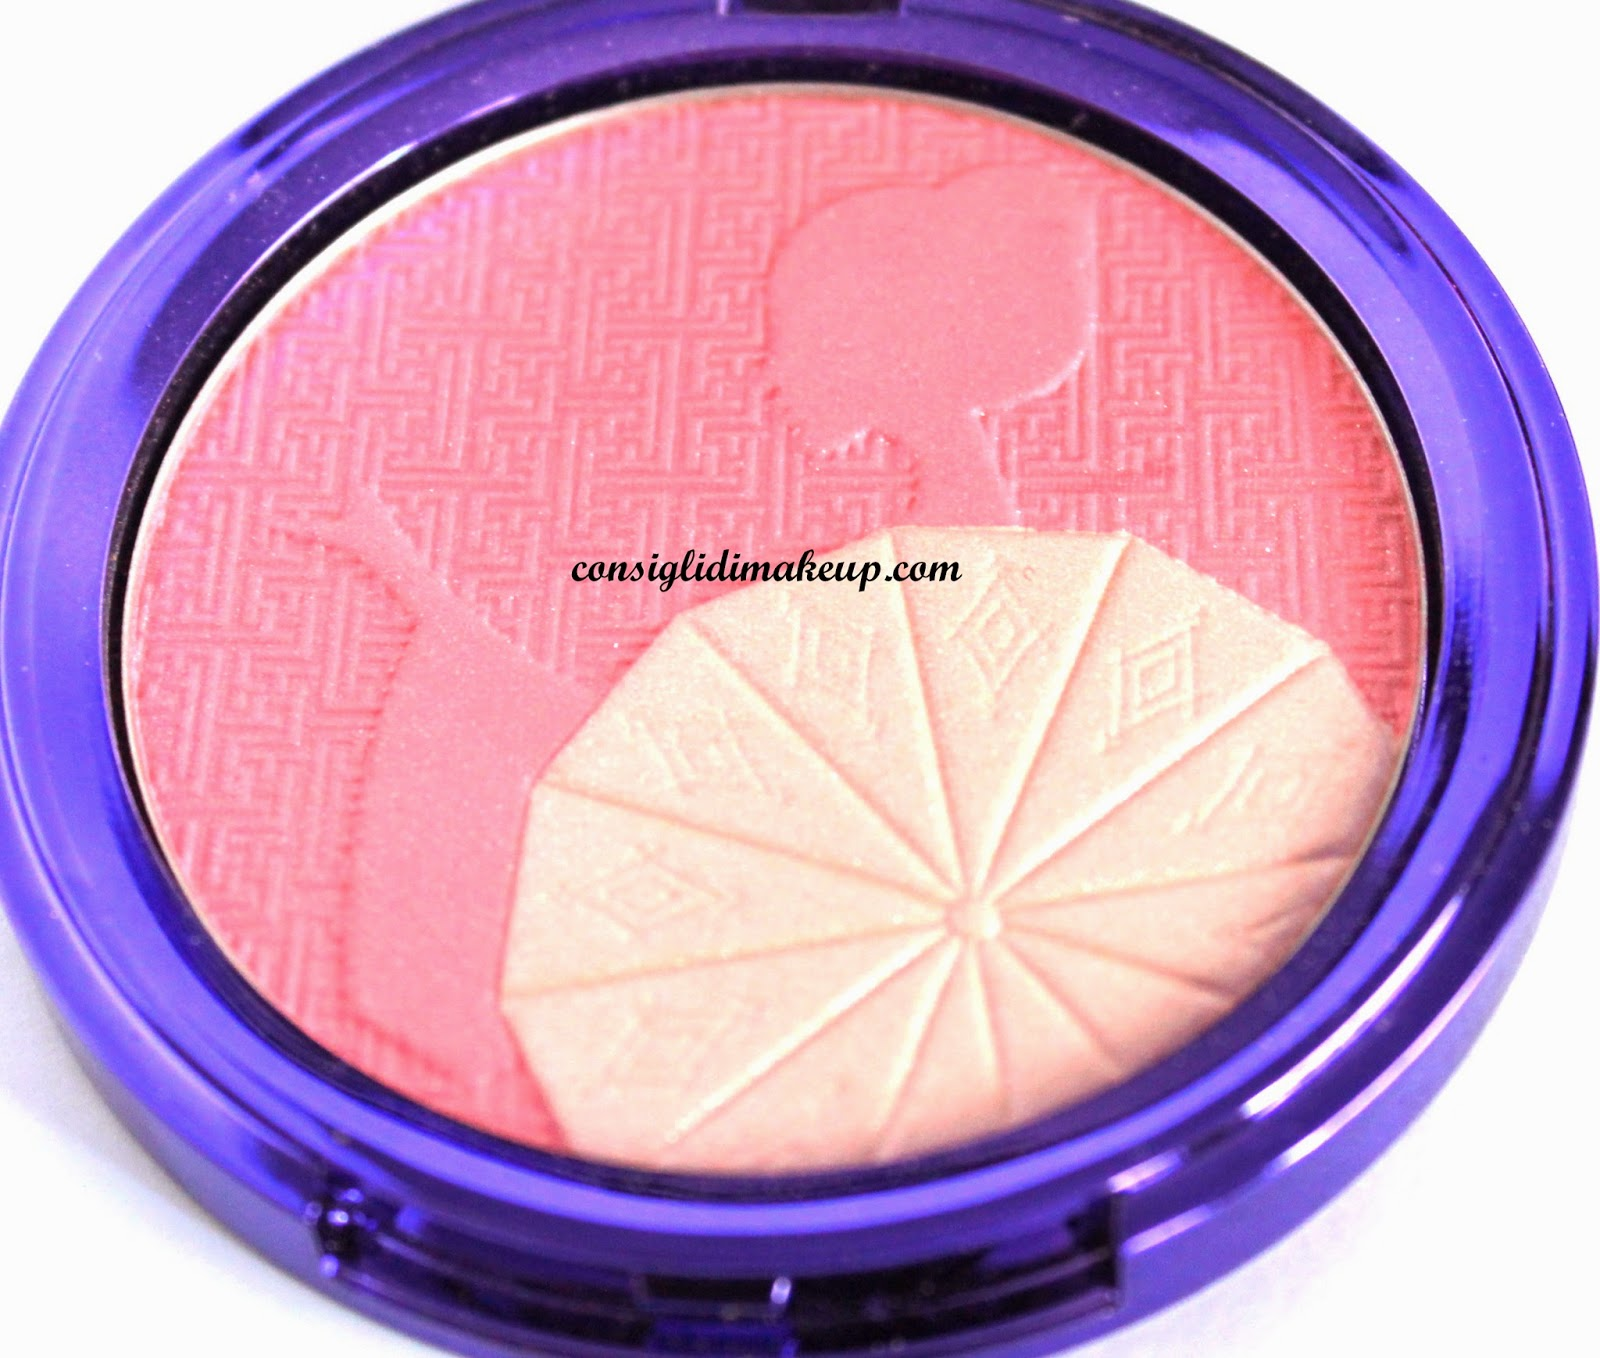 Pupa - China Doll Blush